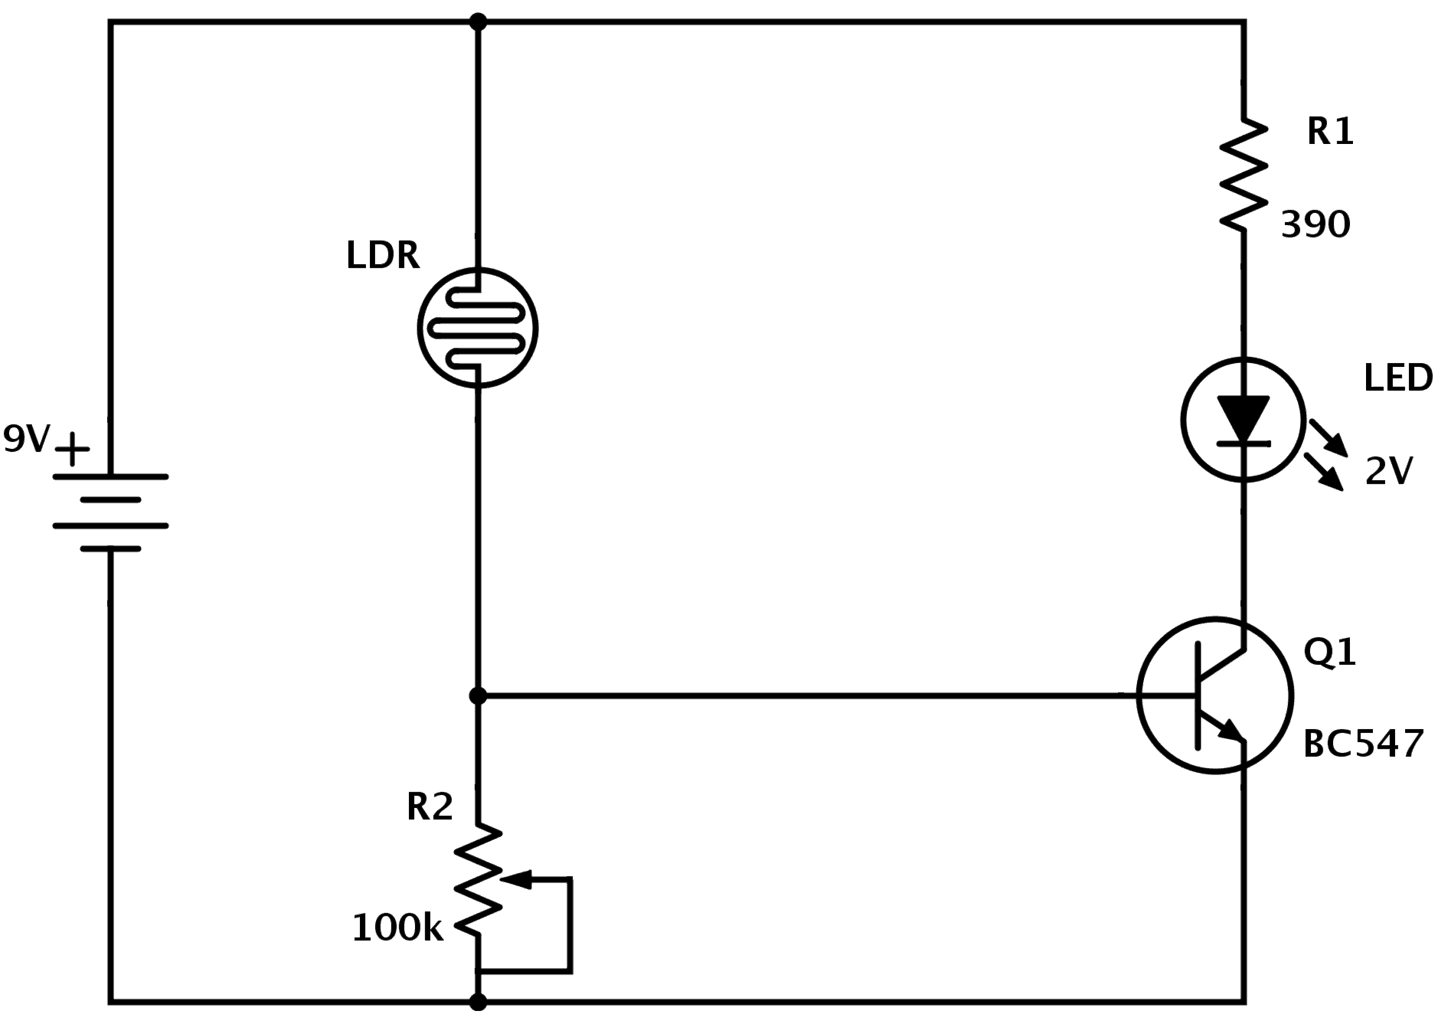 LDR circuit improved circuit diagram how to read and understand any schematic reading wiring schematics at crackthecode.co